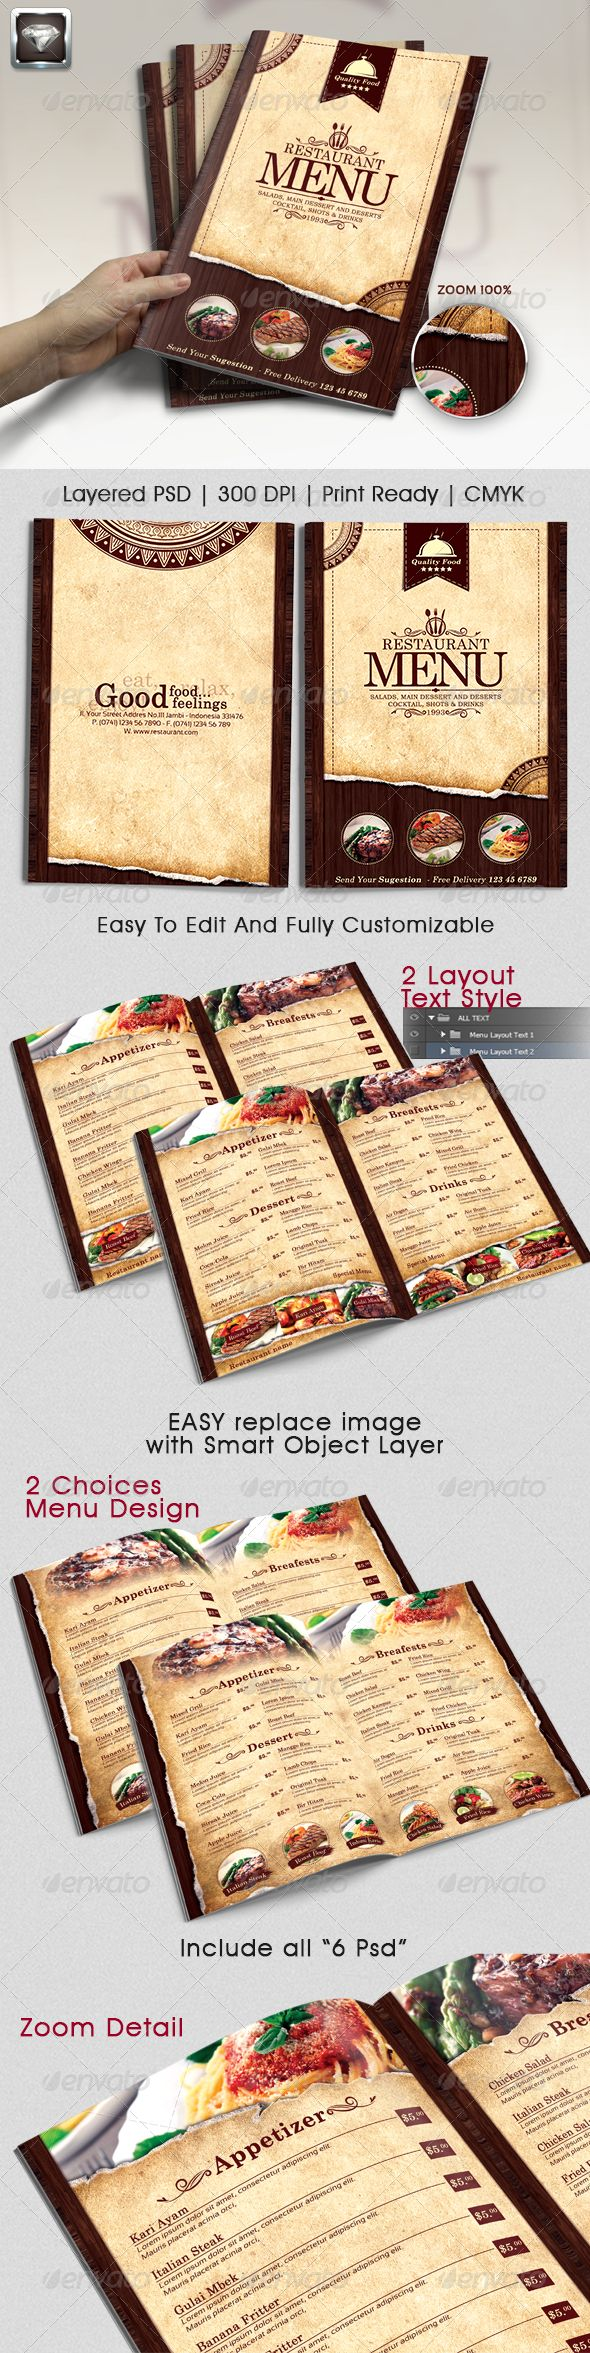 Modern Vintage Restaurant Menu Template #design #alimentationmenu Download: http://graphicriver.net/item/modern-vintage-restaurant-menu-templates-/6908591?ref=ksioks